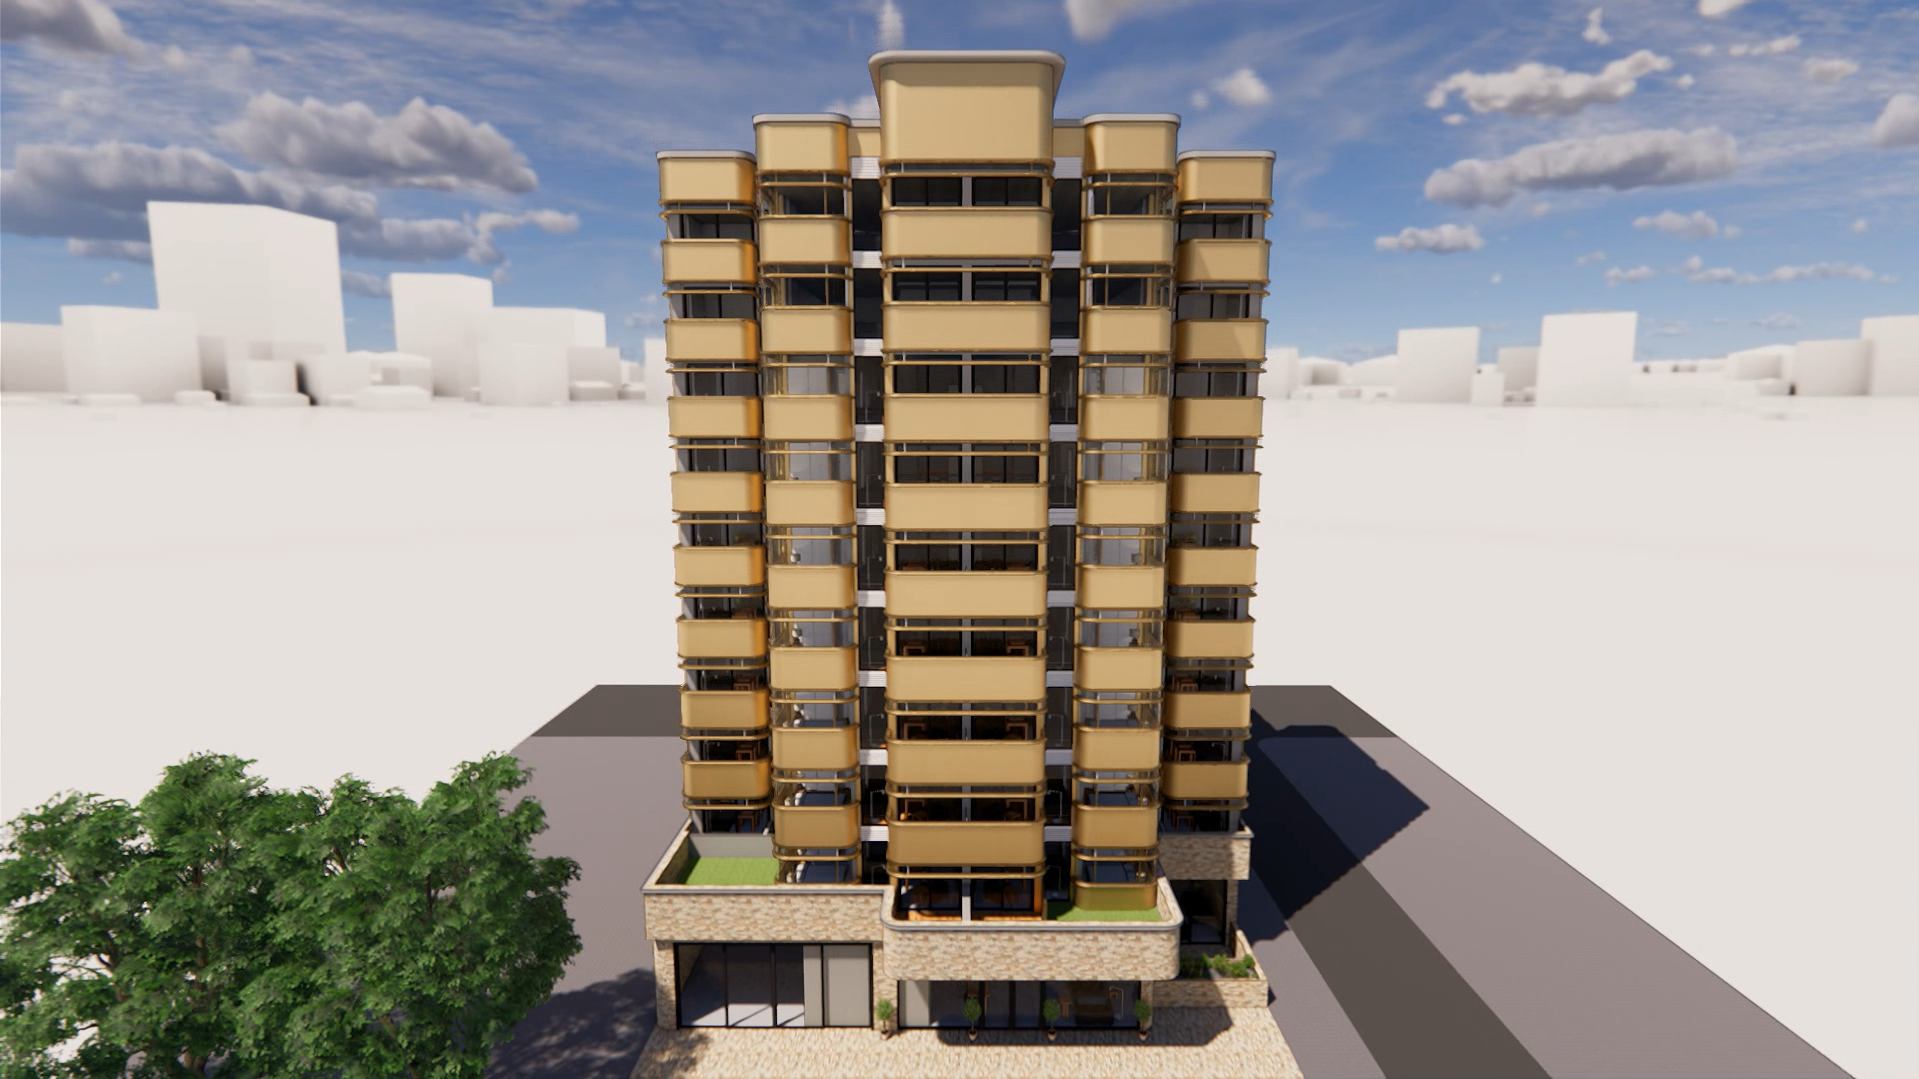 Rendering of a modern building front view